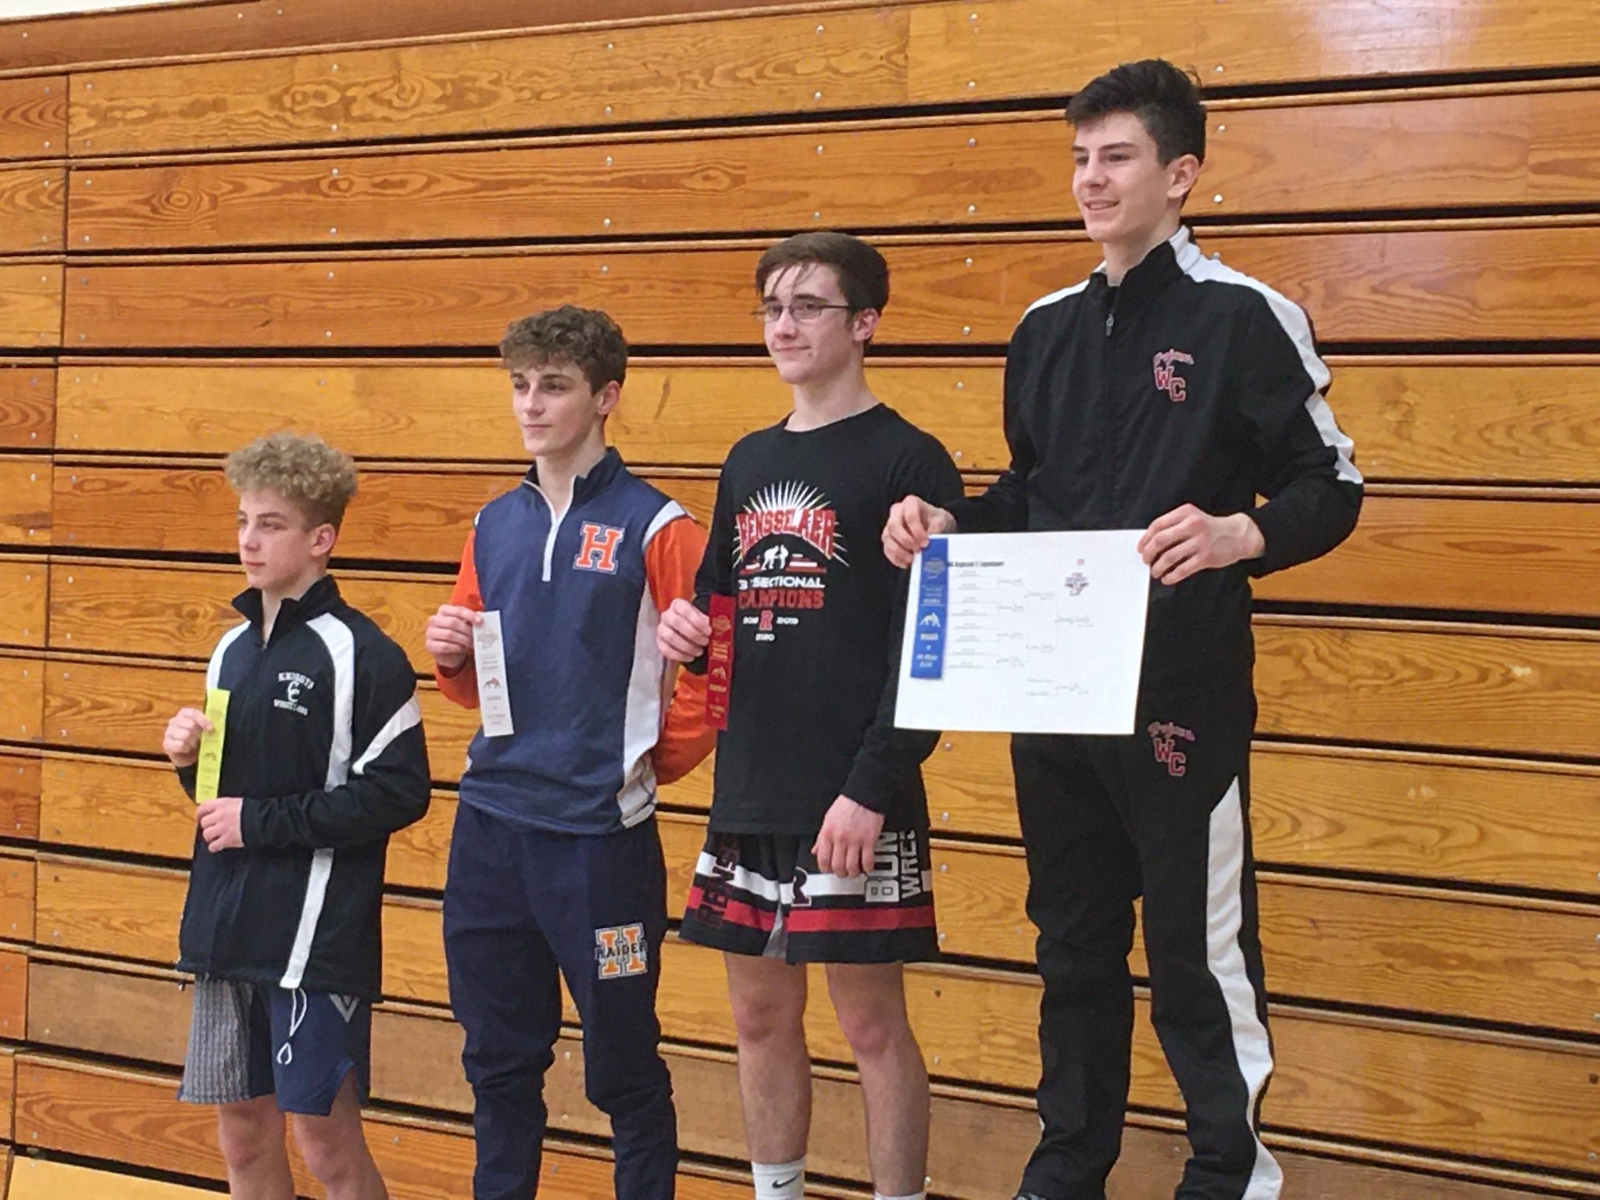 Nuest falls in first round, finishes season 29-5, MWC/ IHSAA Sectional-Regional Champion